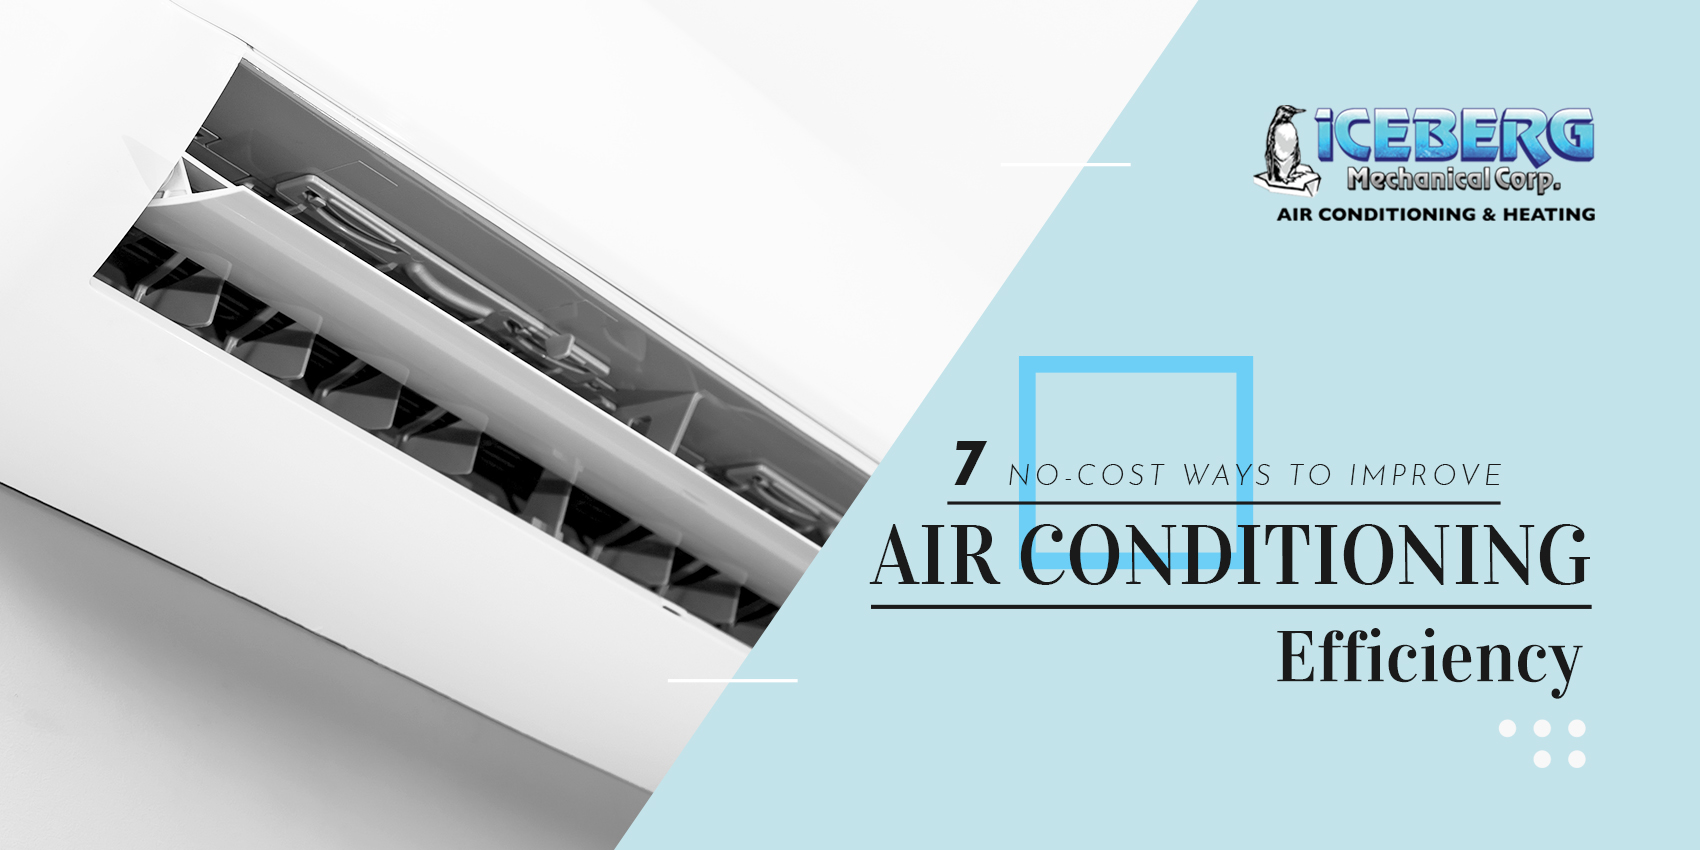 7 No-Cost Ways to Improve Air Conditioning Efficiency